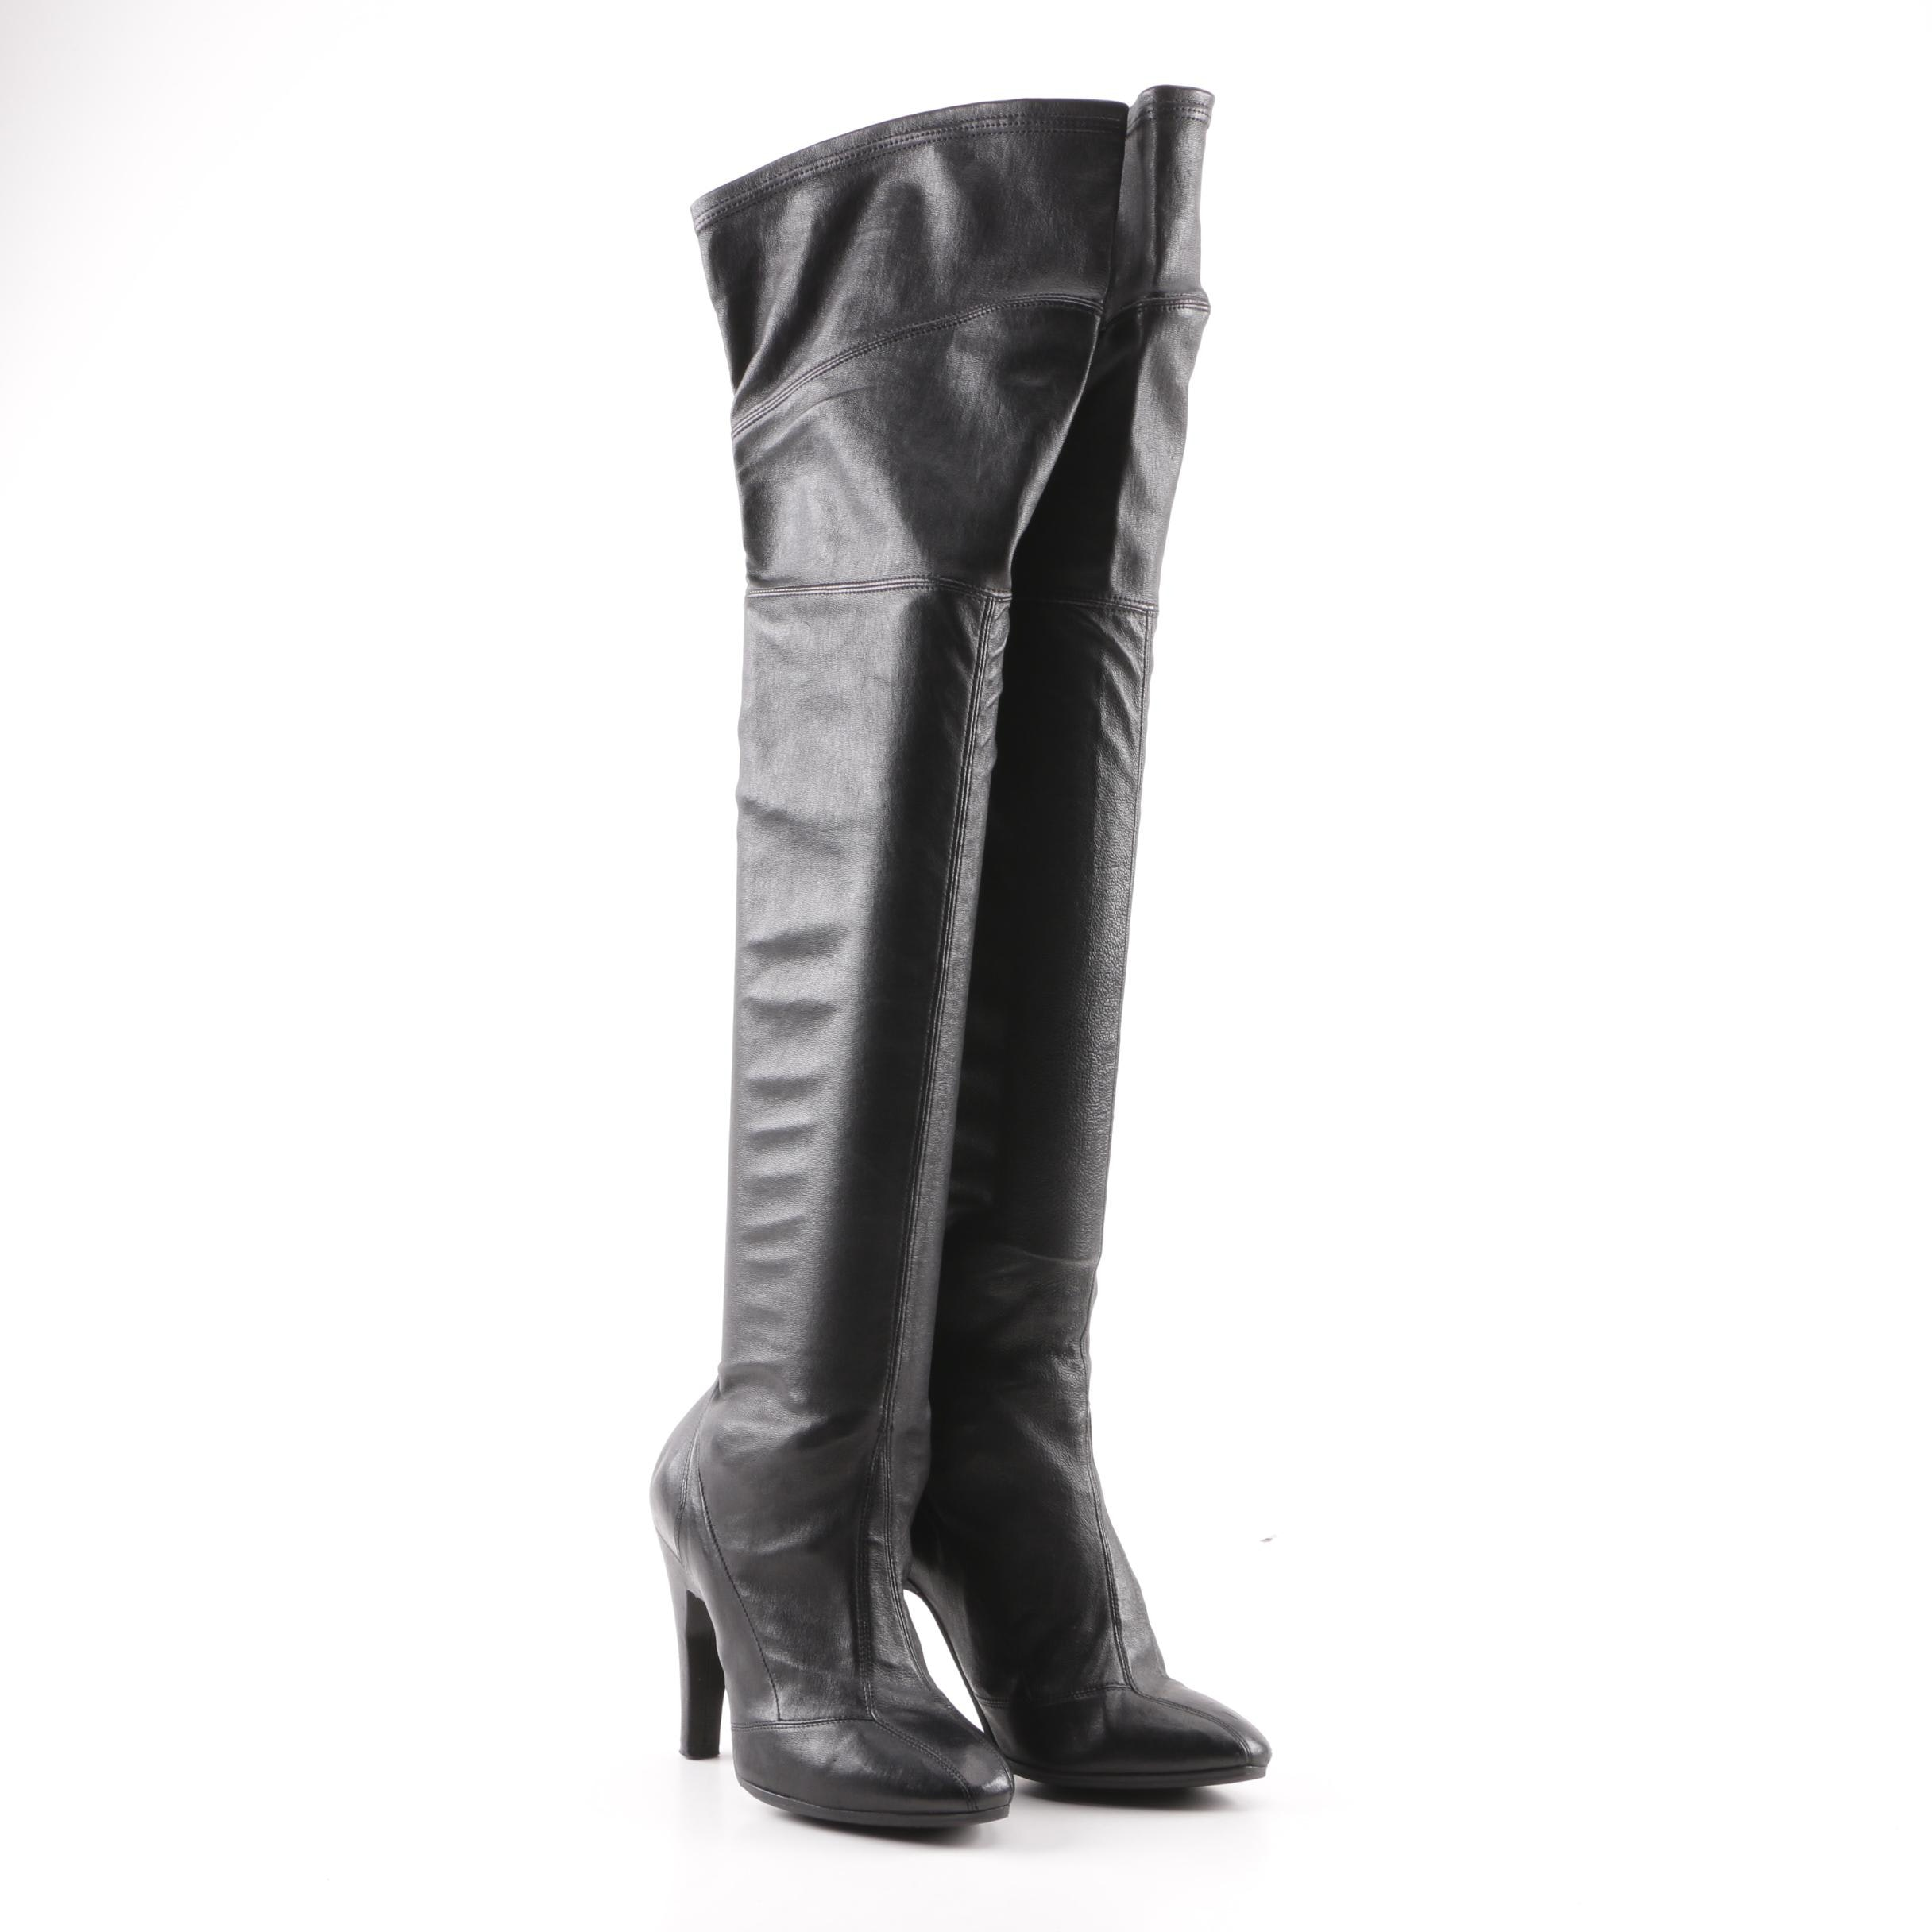 Women's Stephen Venezia Black Leather Over-the-Knee High-Heeled Boots